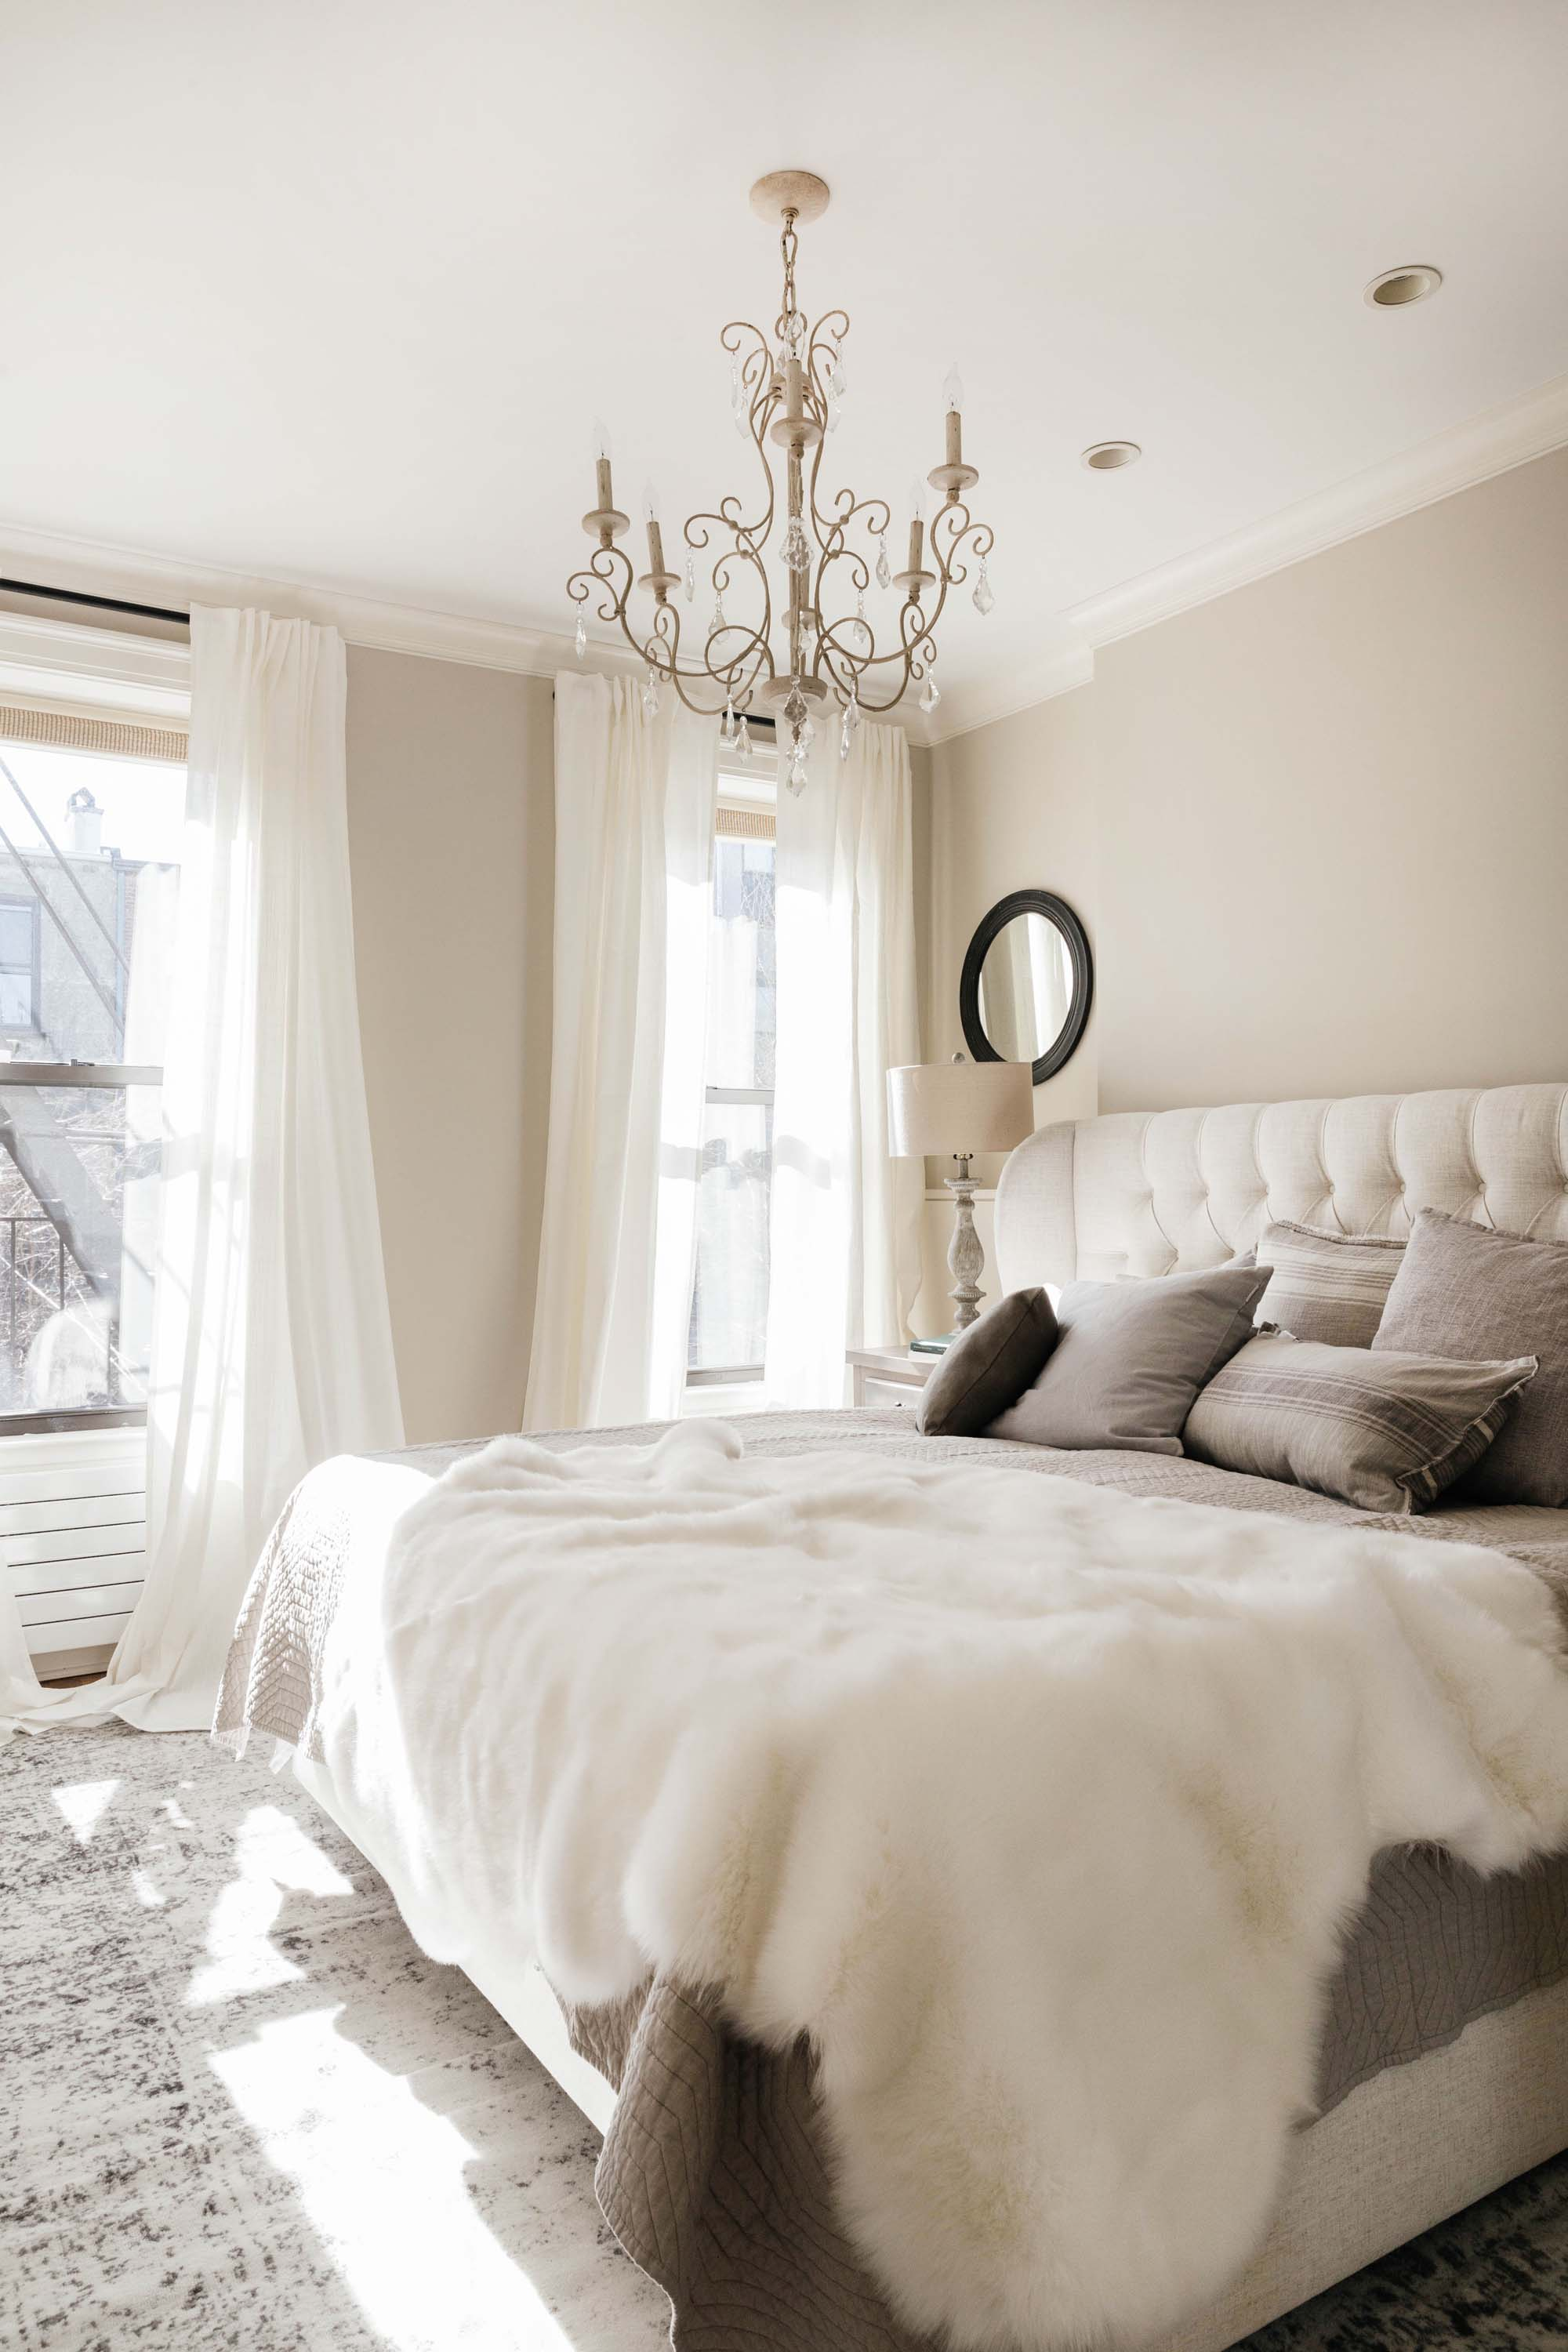 Bright bedroom with sheepskin draped over the bed